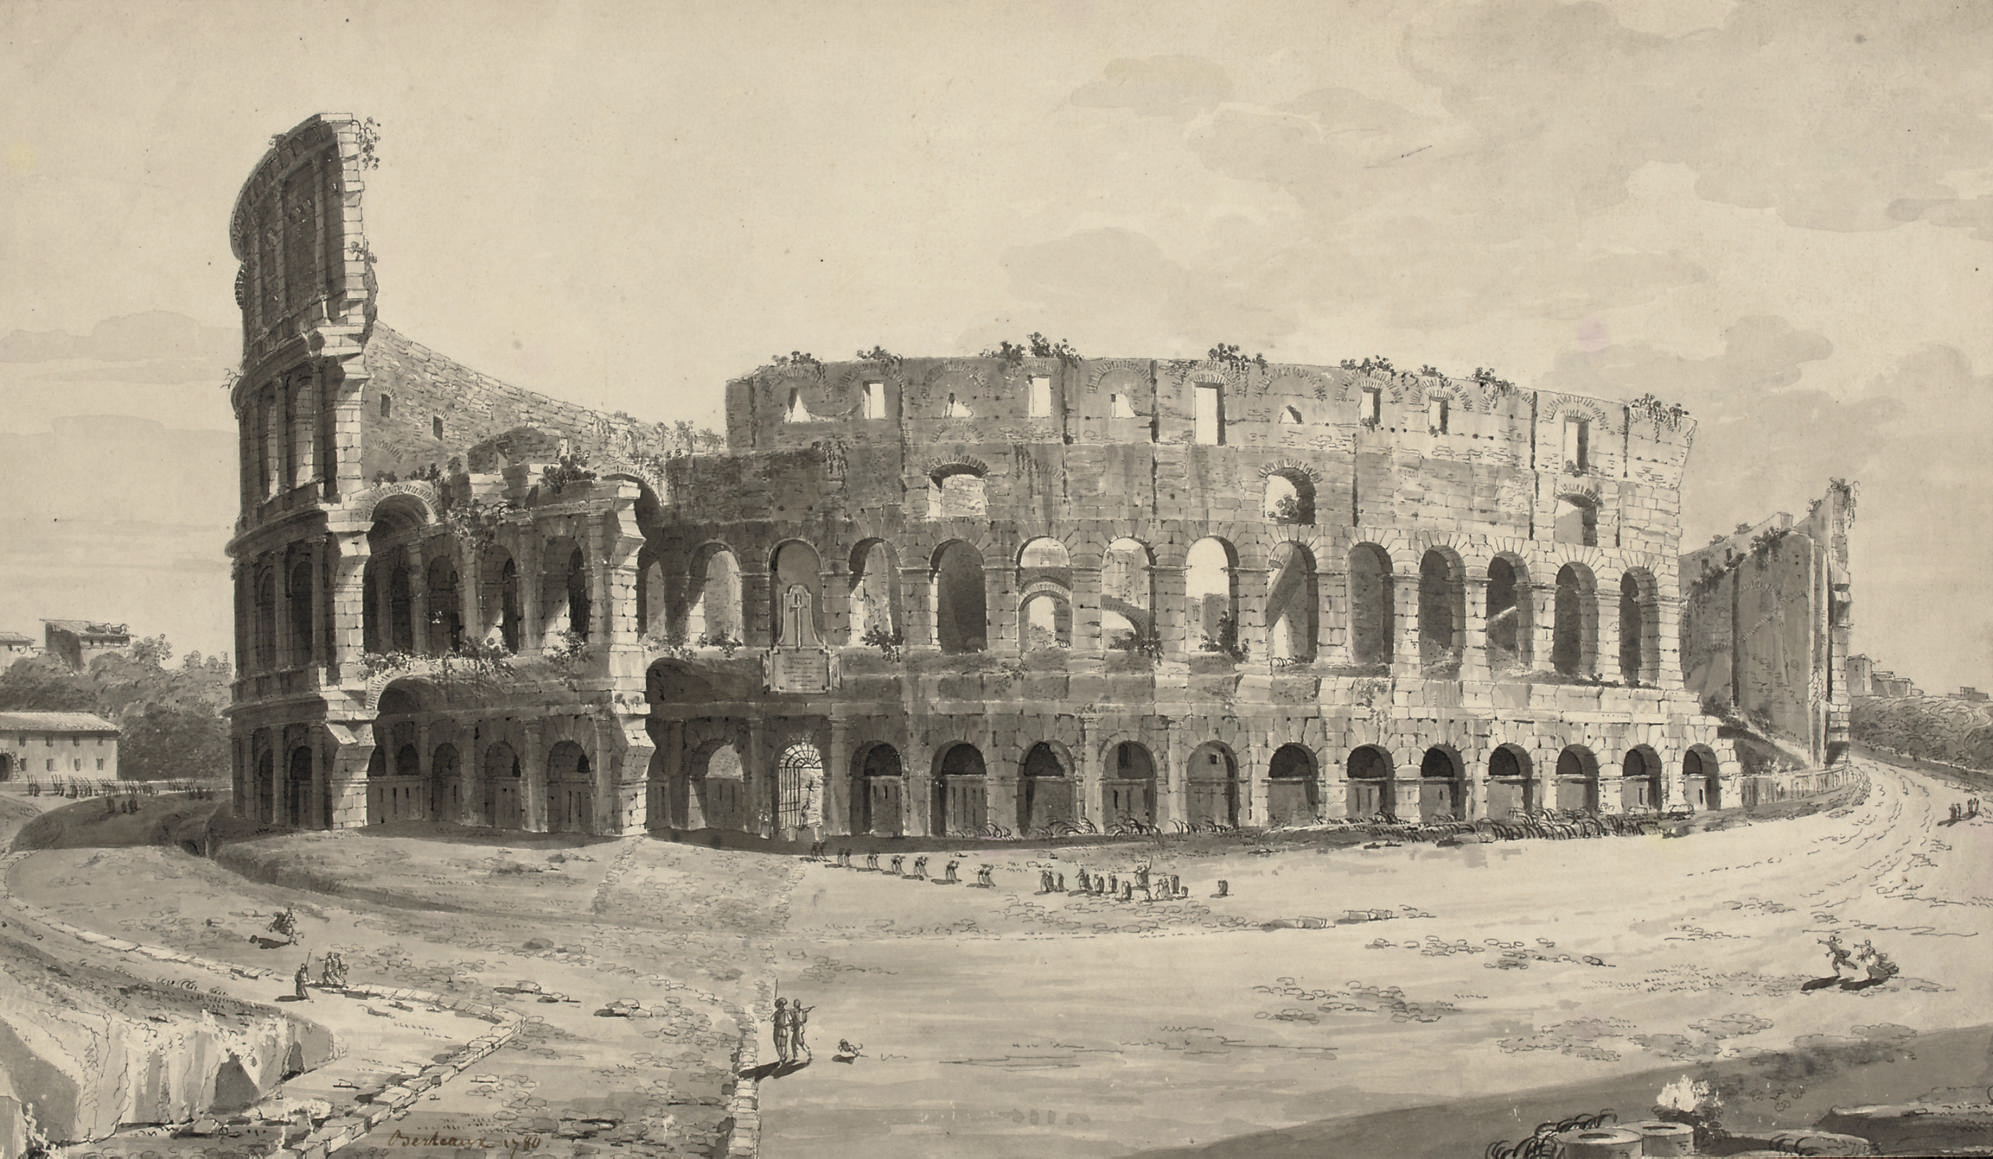 A procession approaching the Colosseum, Rome